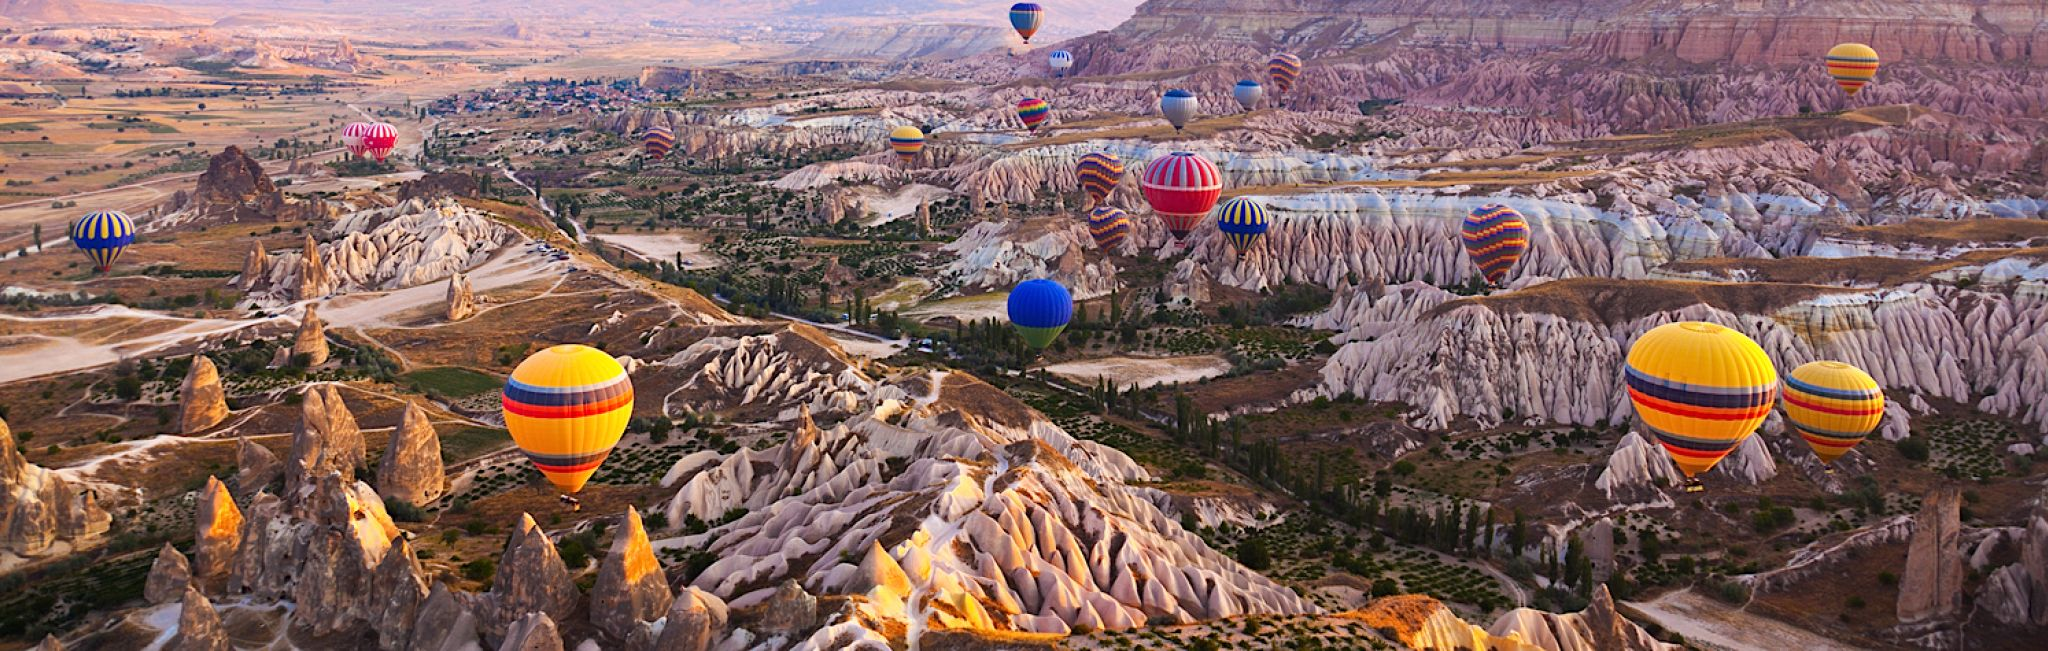 Turkey Tours Vacations Amp Luxury Travel Packages 2016 2017 Zicasso